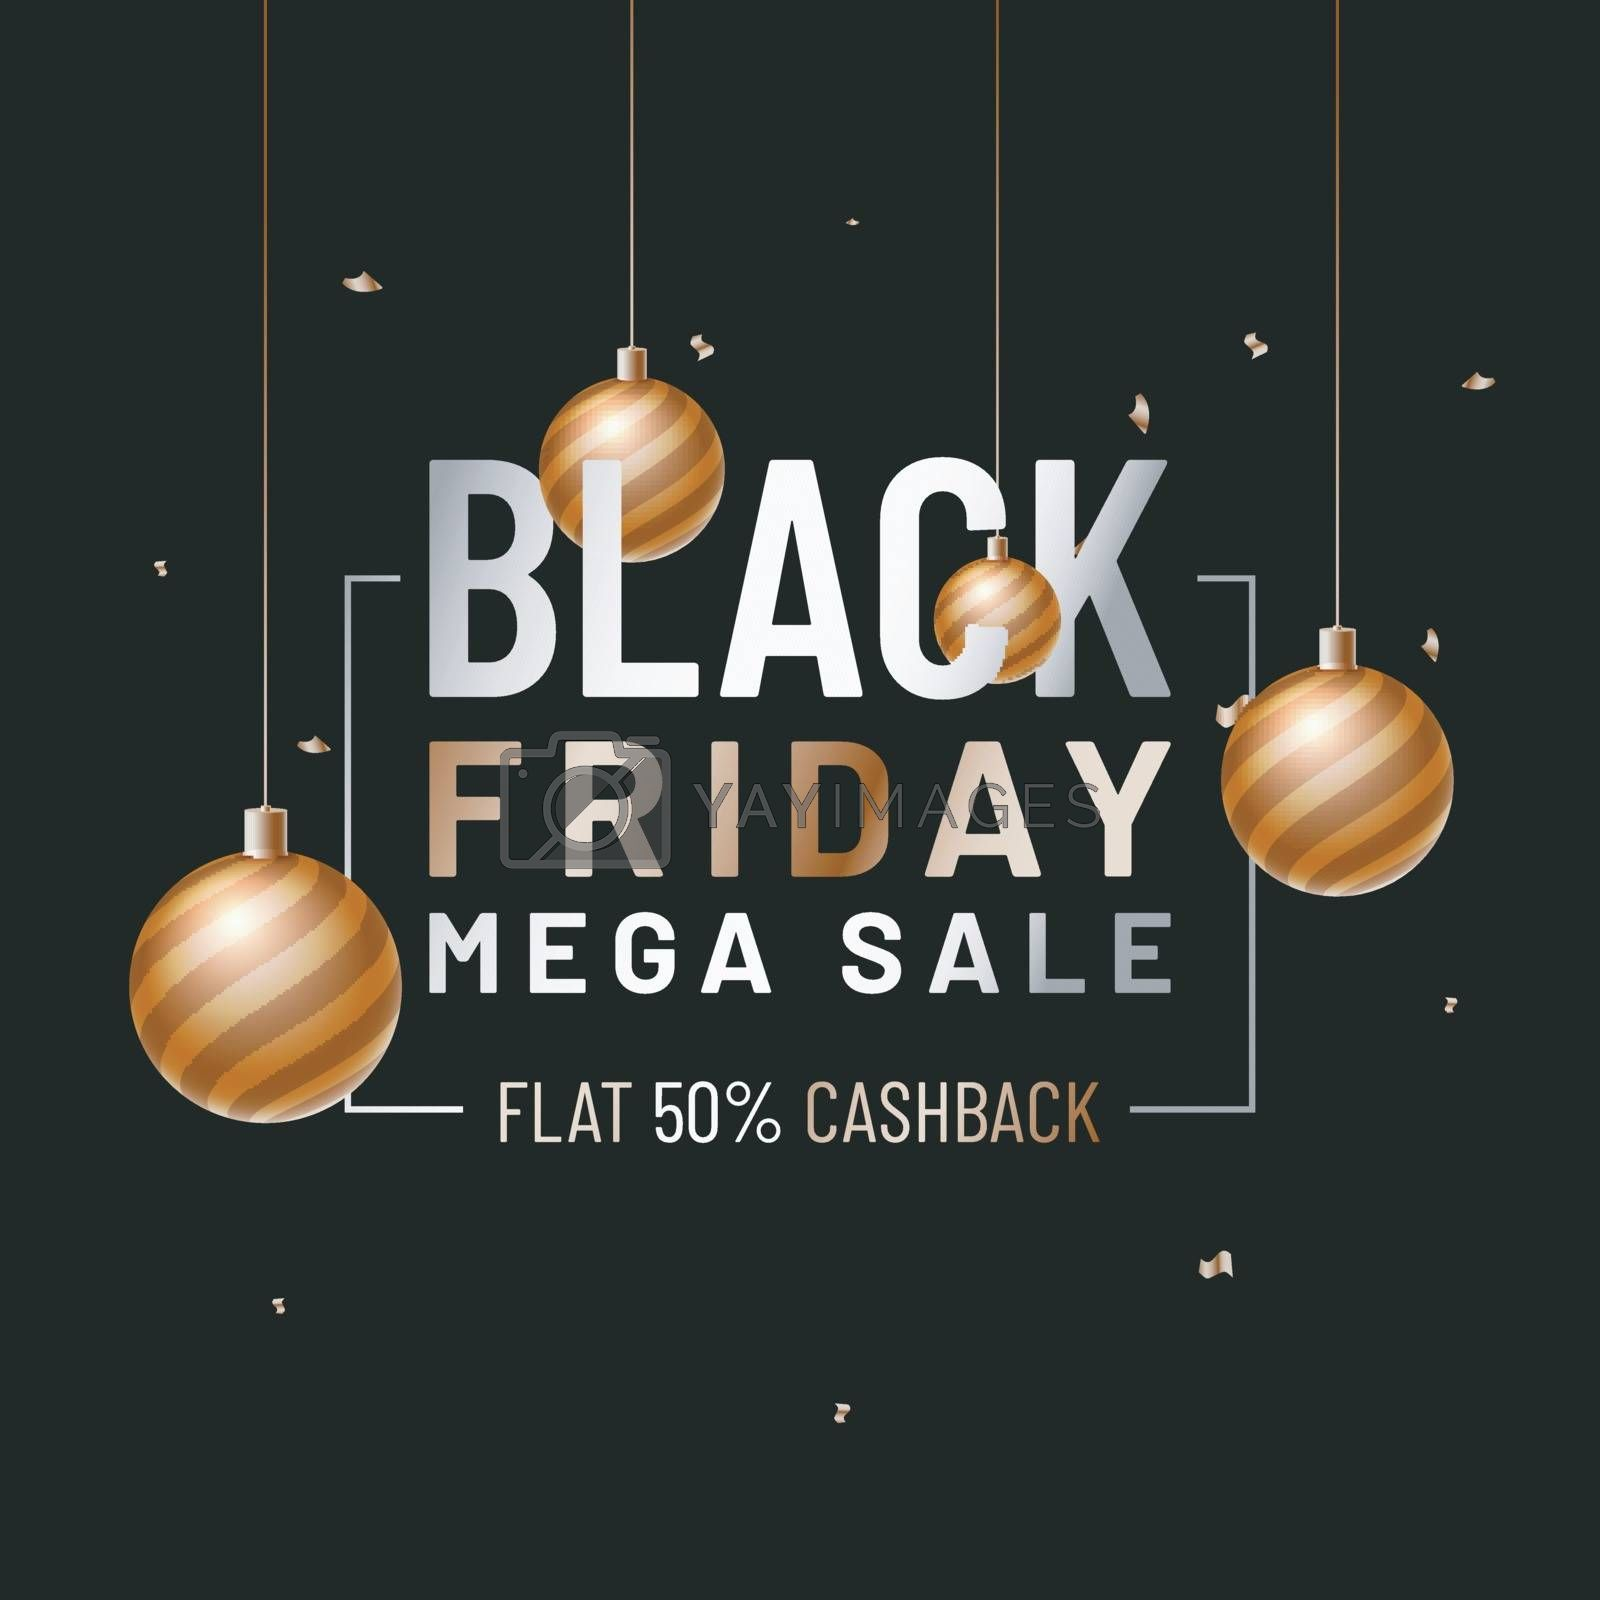 Advertisement Poster or Banner Design with 50% Cashback Offer, Decorated with hanging baubles for Black Friday Mega Sale.